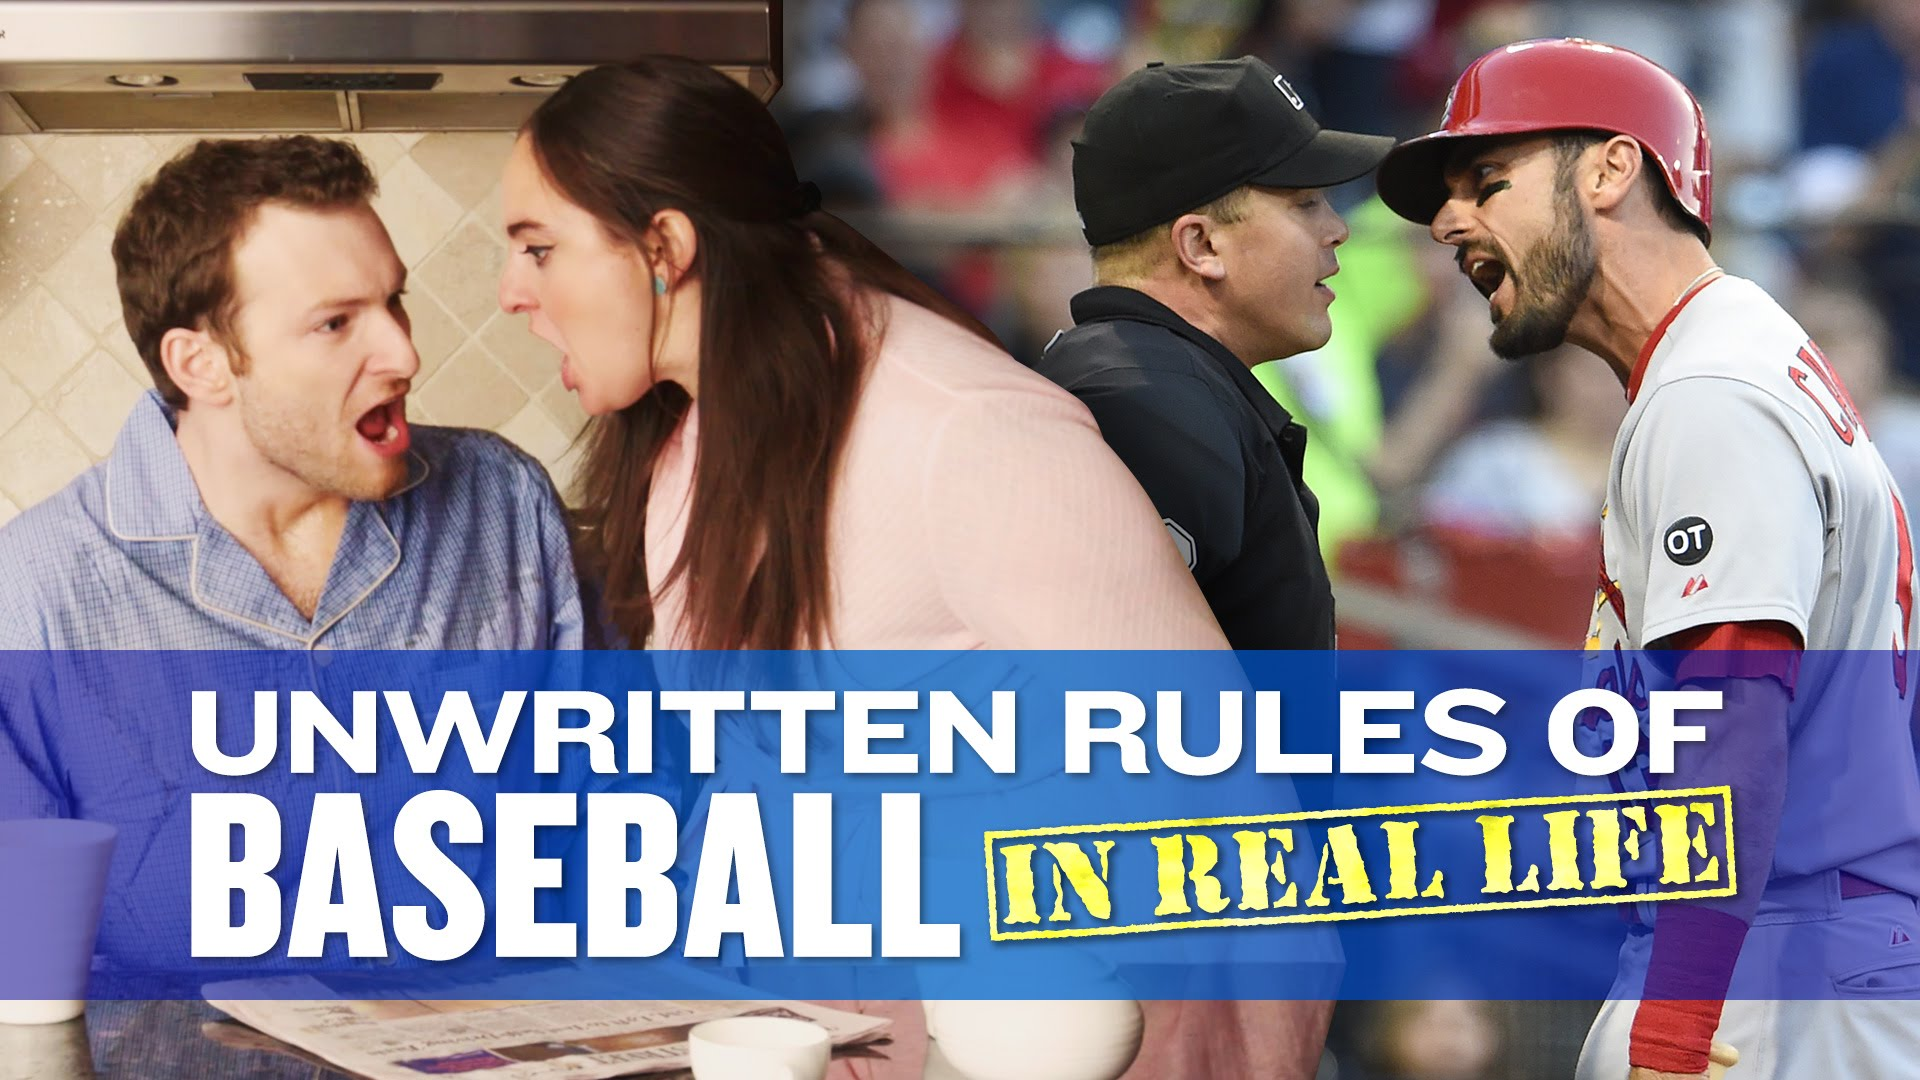 The Unwritten Rules of Baseball in Real Life